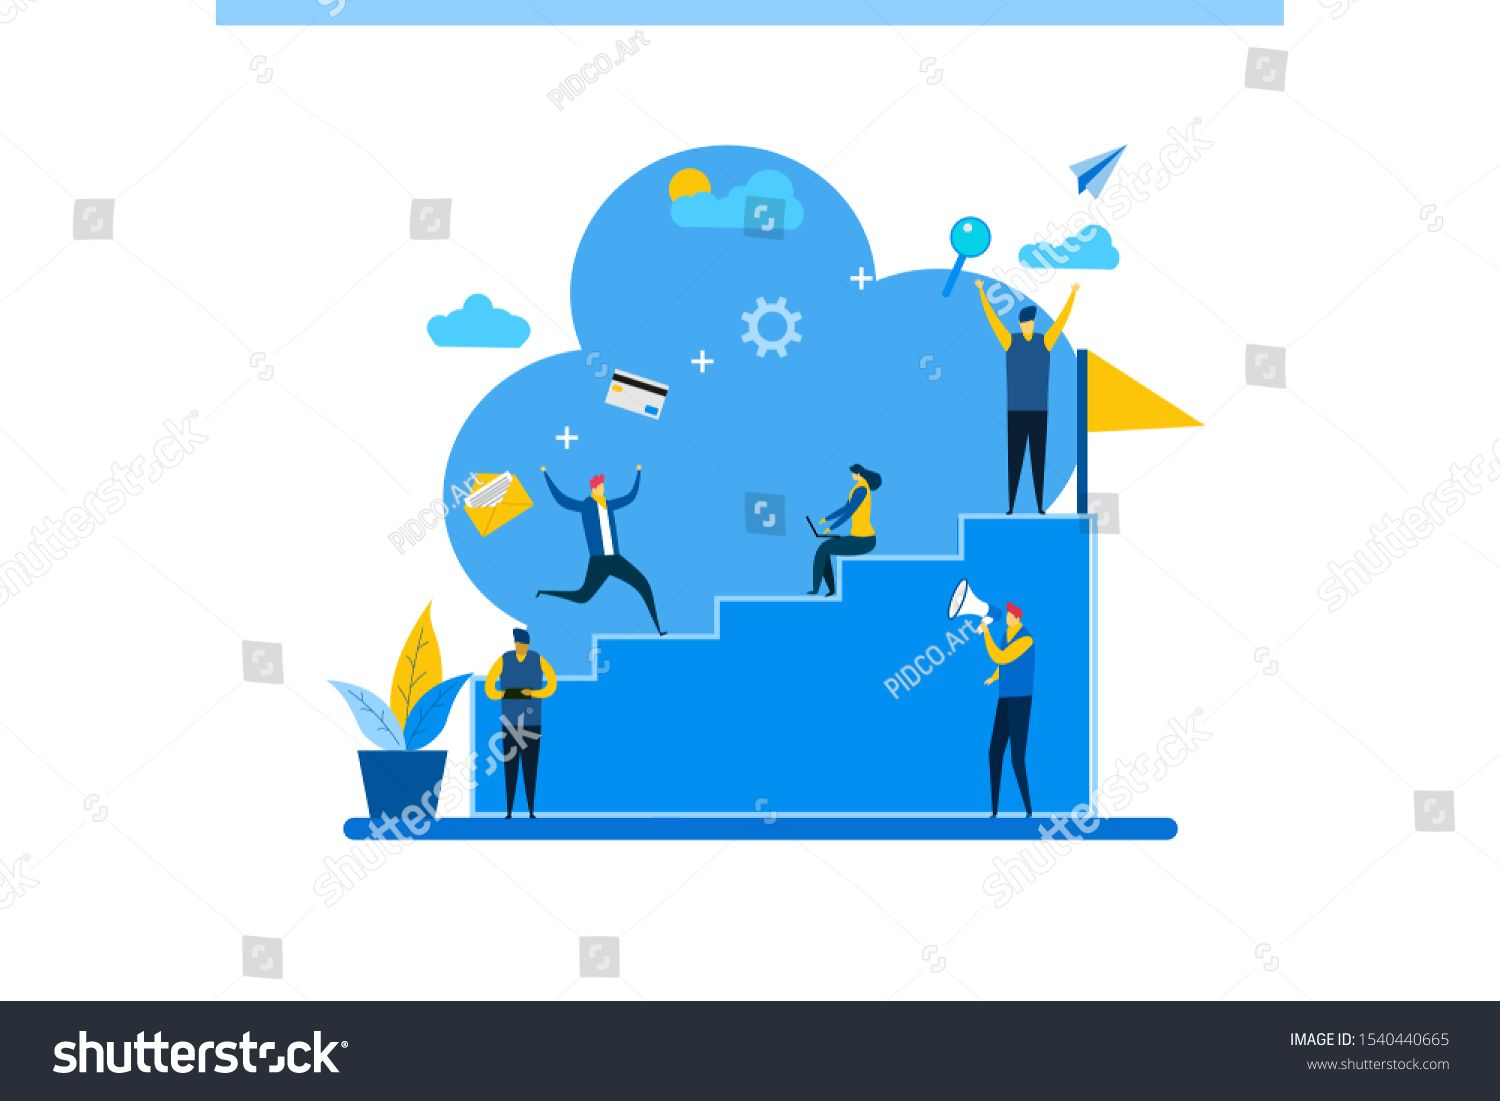 Business People Run To A Higher Level Flat Style Career Planning Career Development Concept Tiny People Char Career Planning Character Concept Character Poses